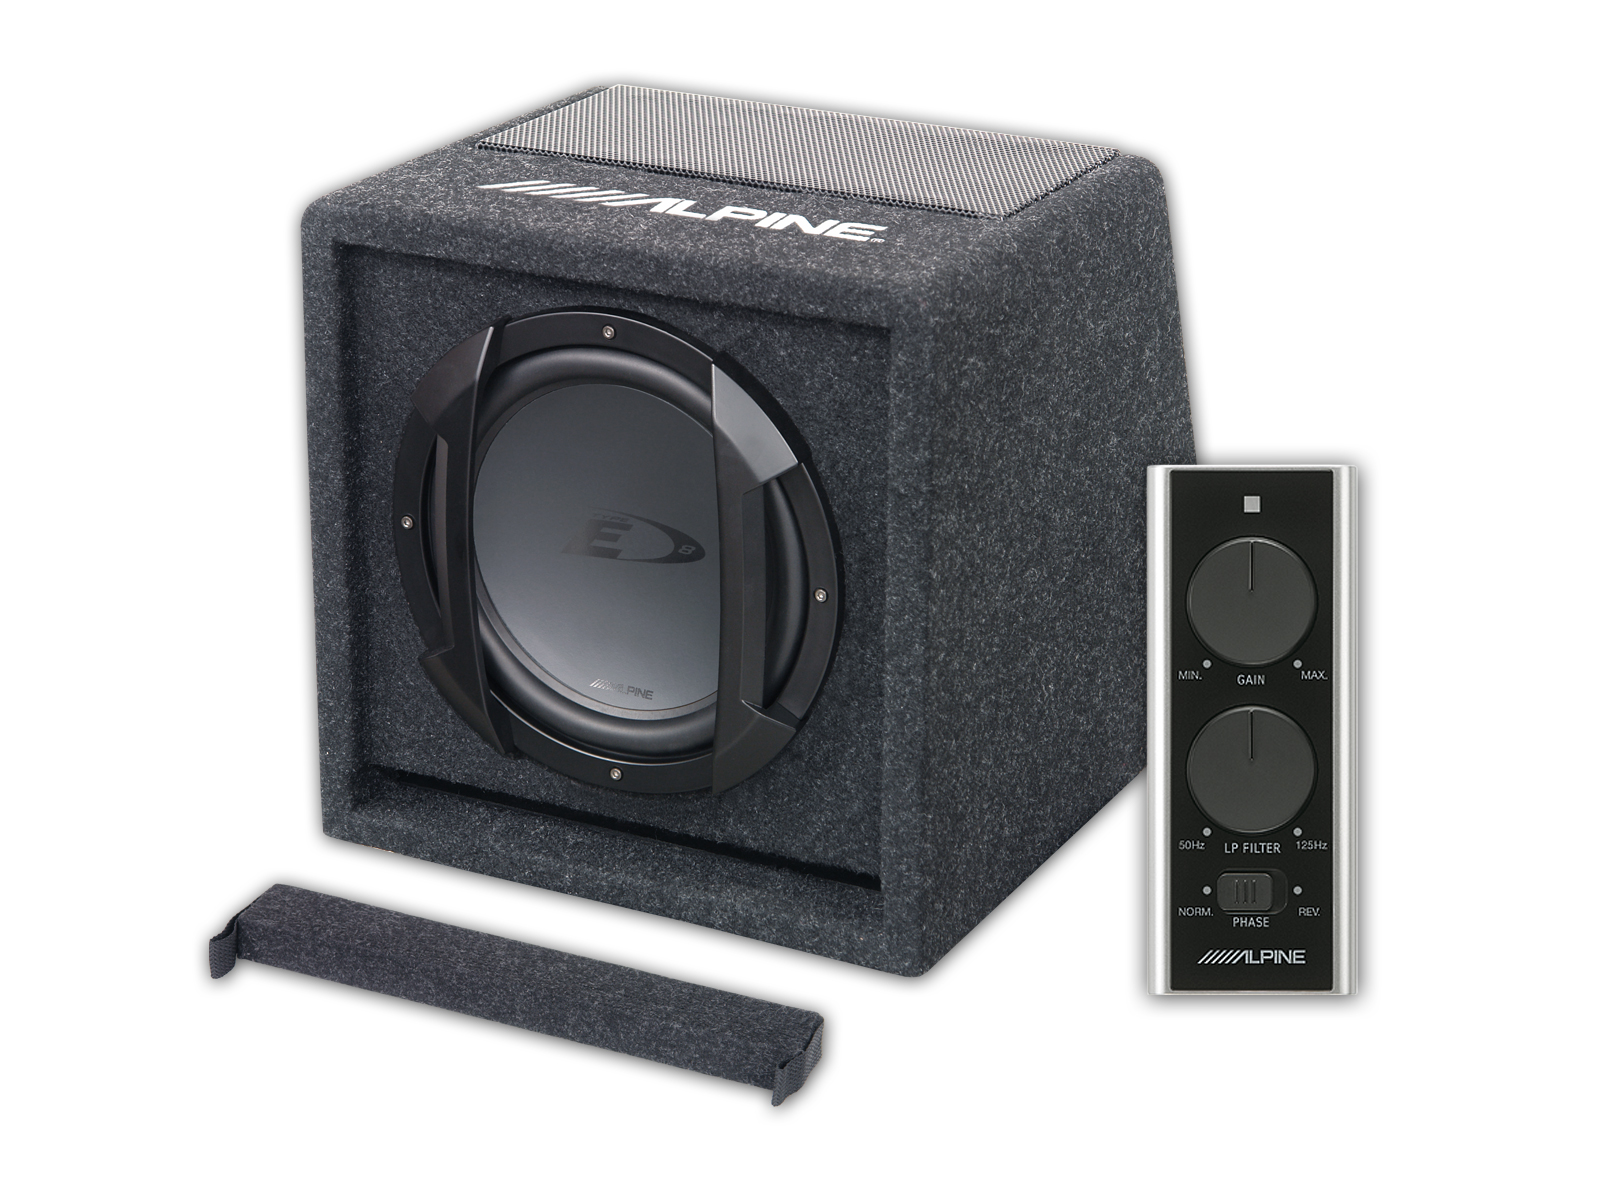 8 20cm Amplified Subwoofer Box Alpine Swe 815 Power Supply To A Car Amplifier For Subwoofers In Your Home